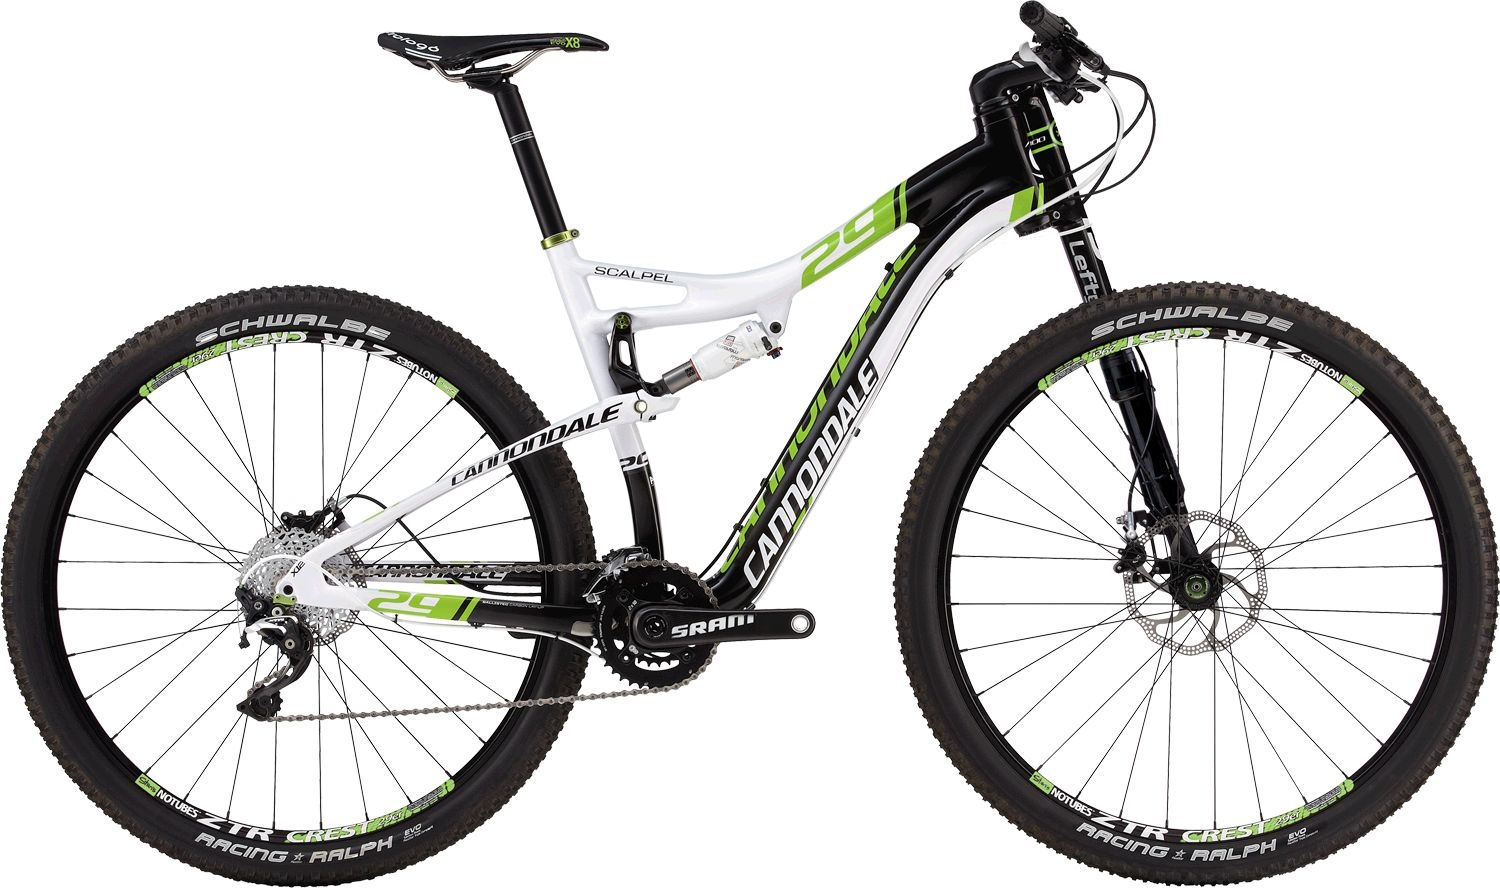 93cd62c36ee Cannondale SCALPEL 29ER CARBON 2 2013 review - The Bike List